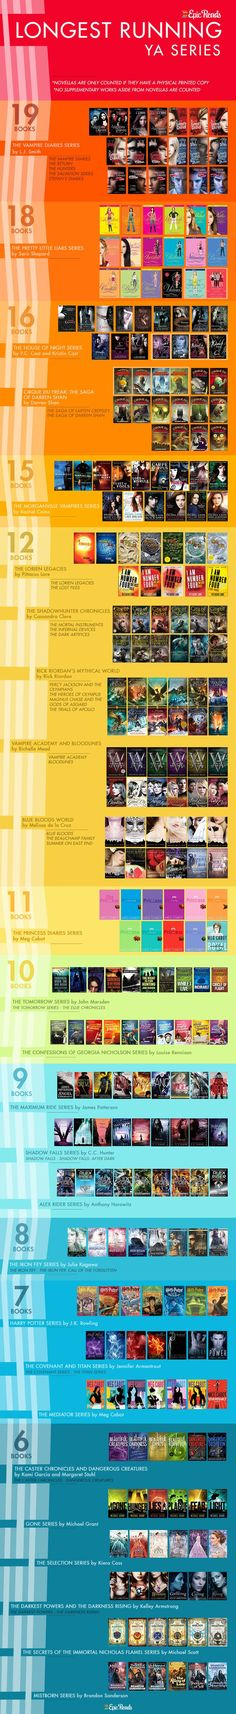 34 compelling first lines of famous books famous books infographic the longest running series in ya fandeluxe Images